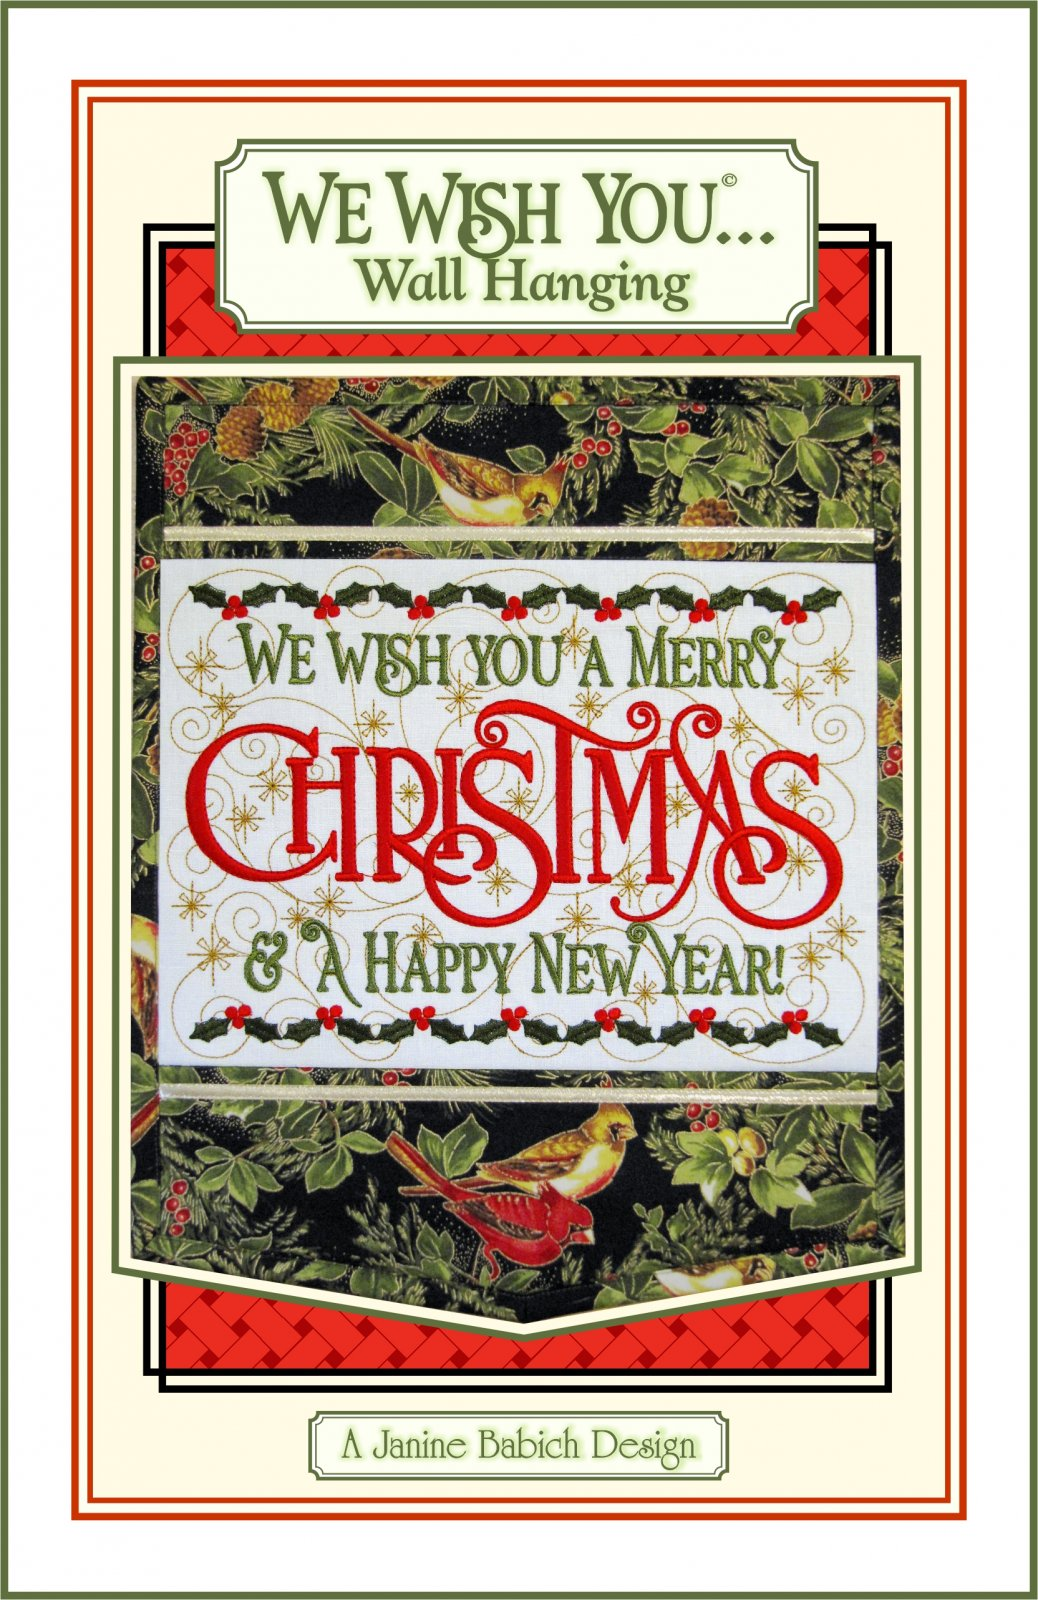 We Wish You A Merry Christmas - Wall Hanging